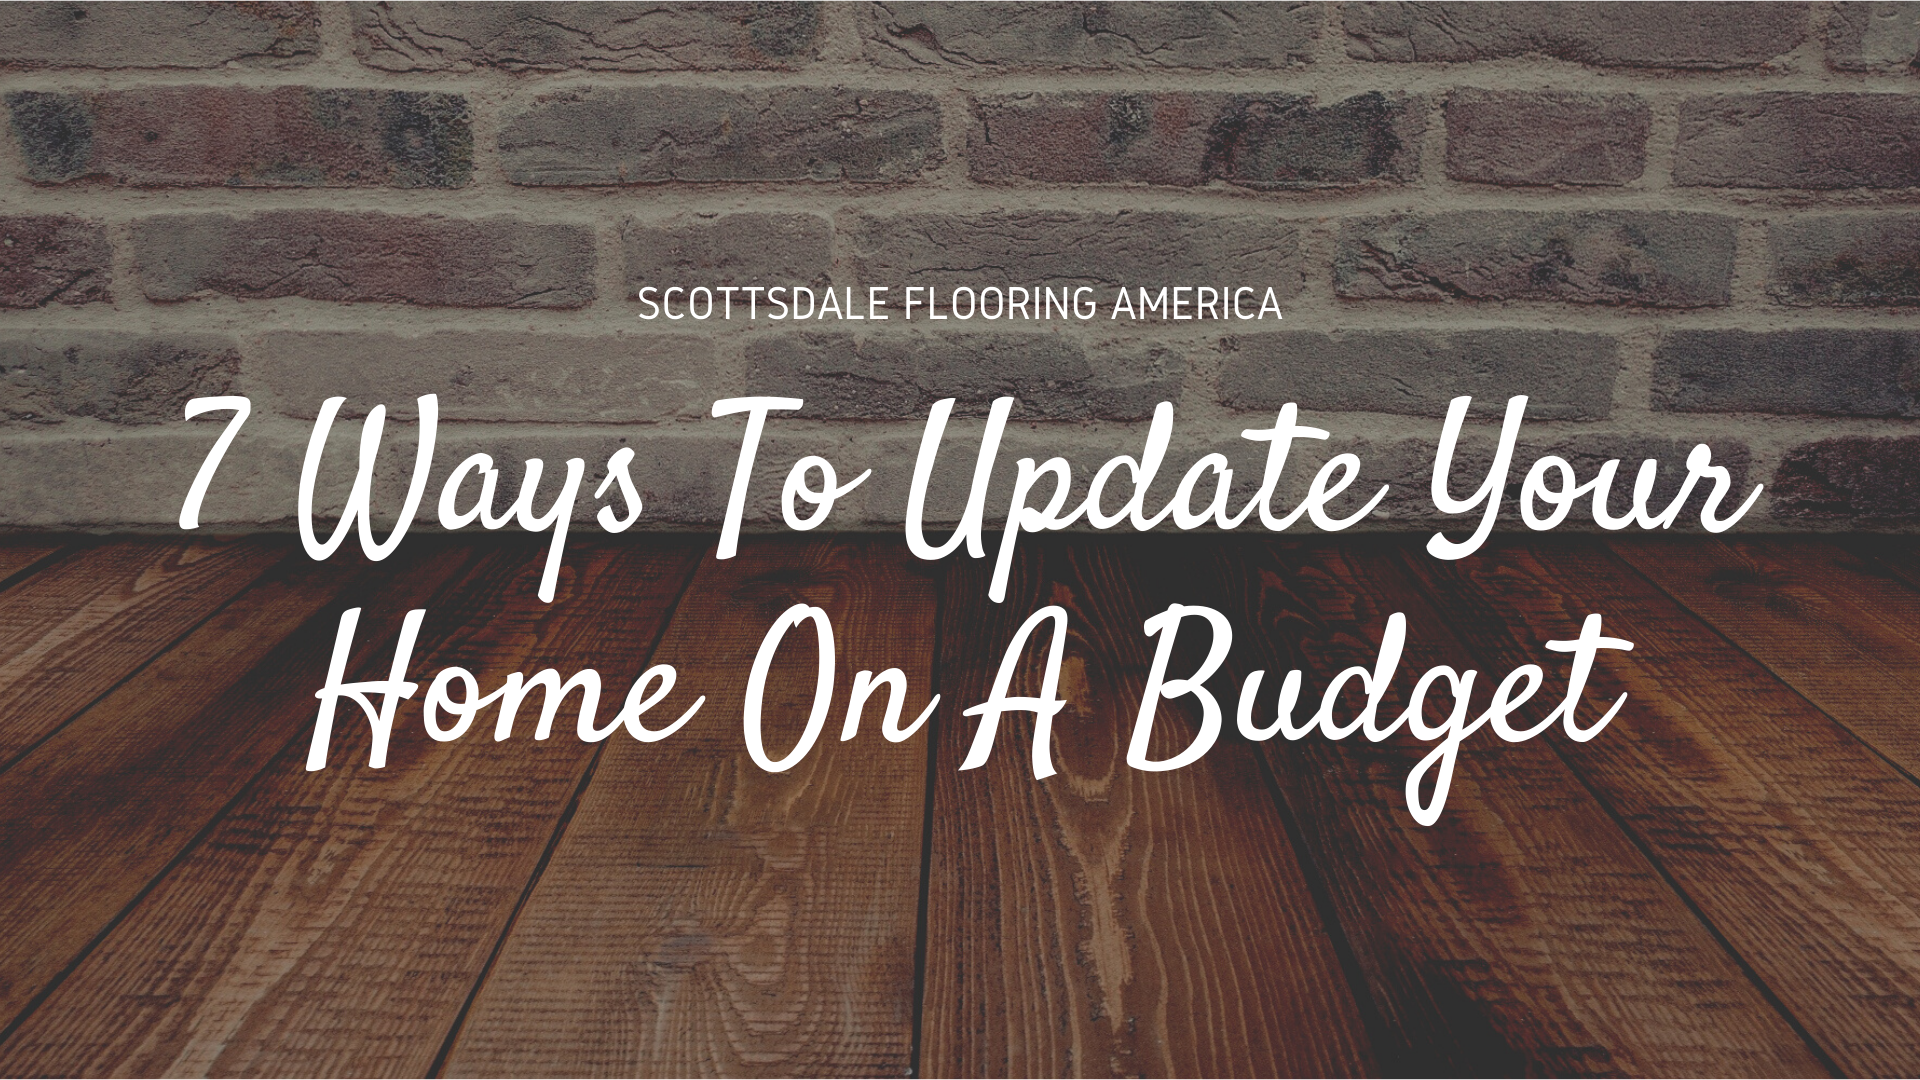 7 Ways To Update Your Home On A Budget